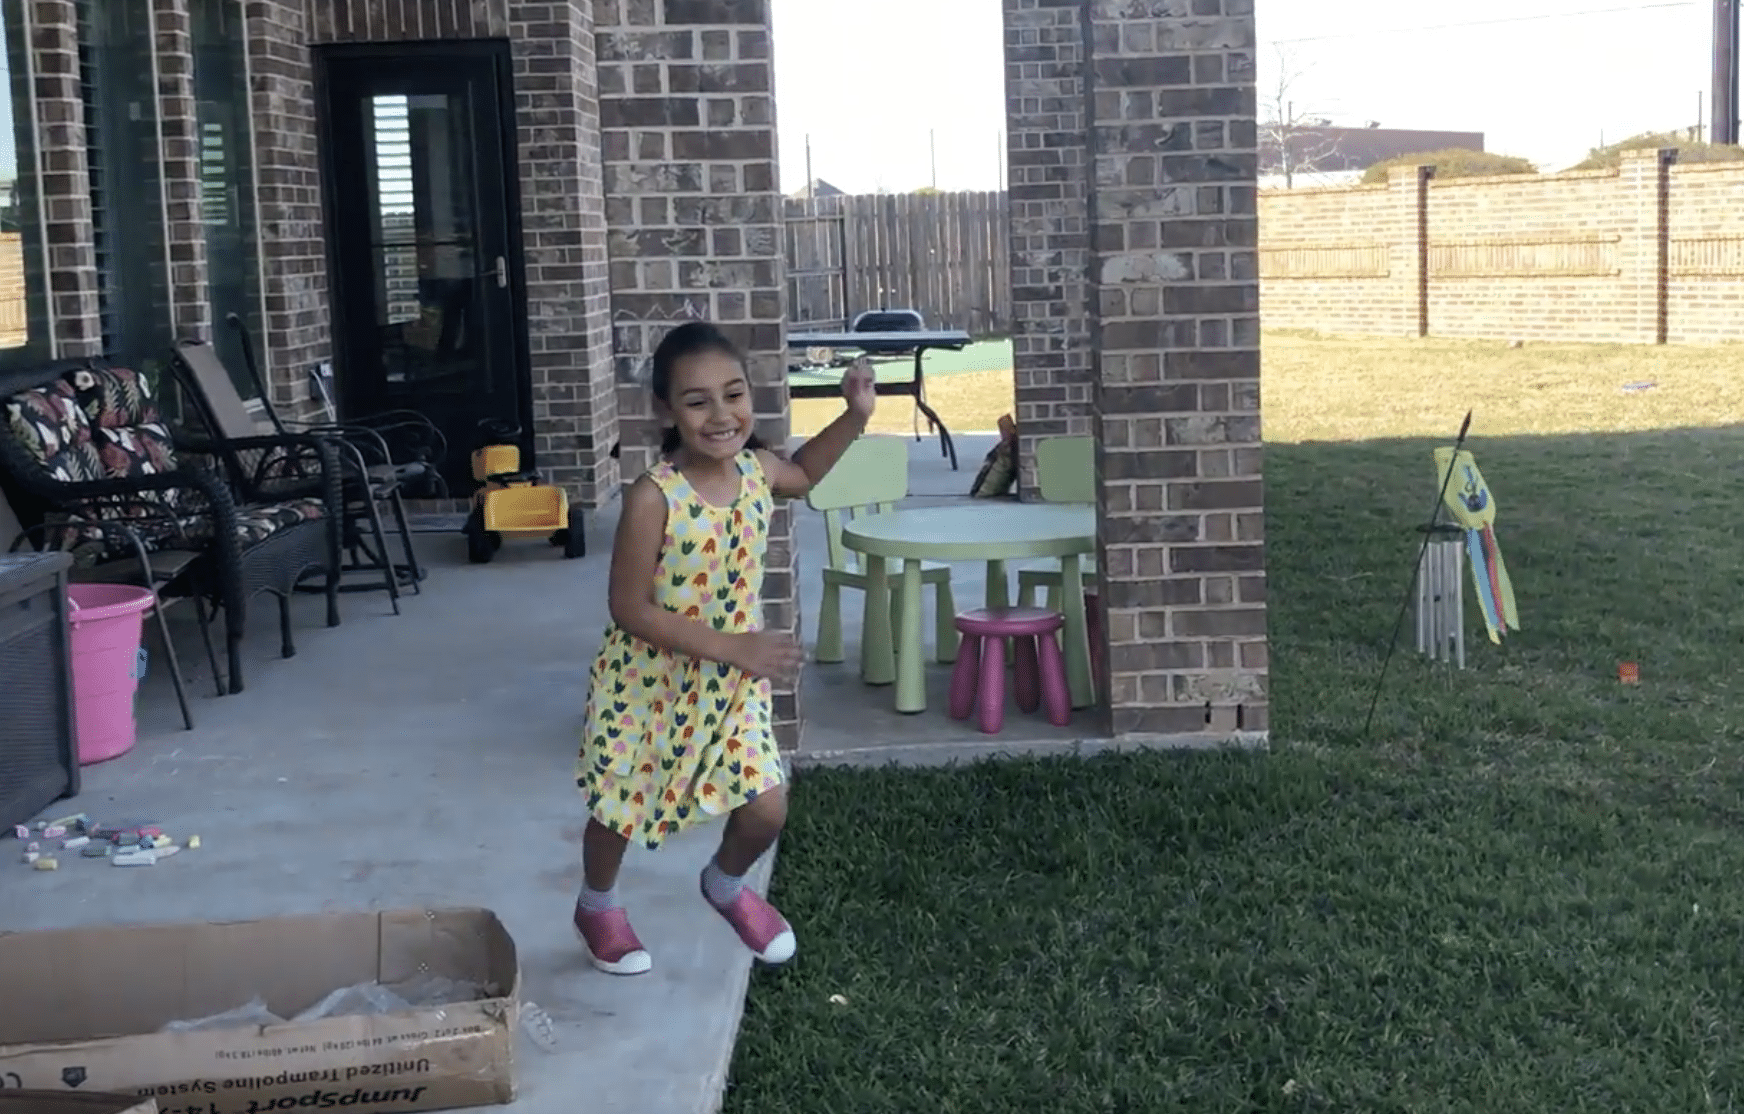 Excited to see trampoline